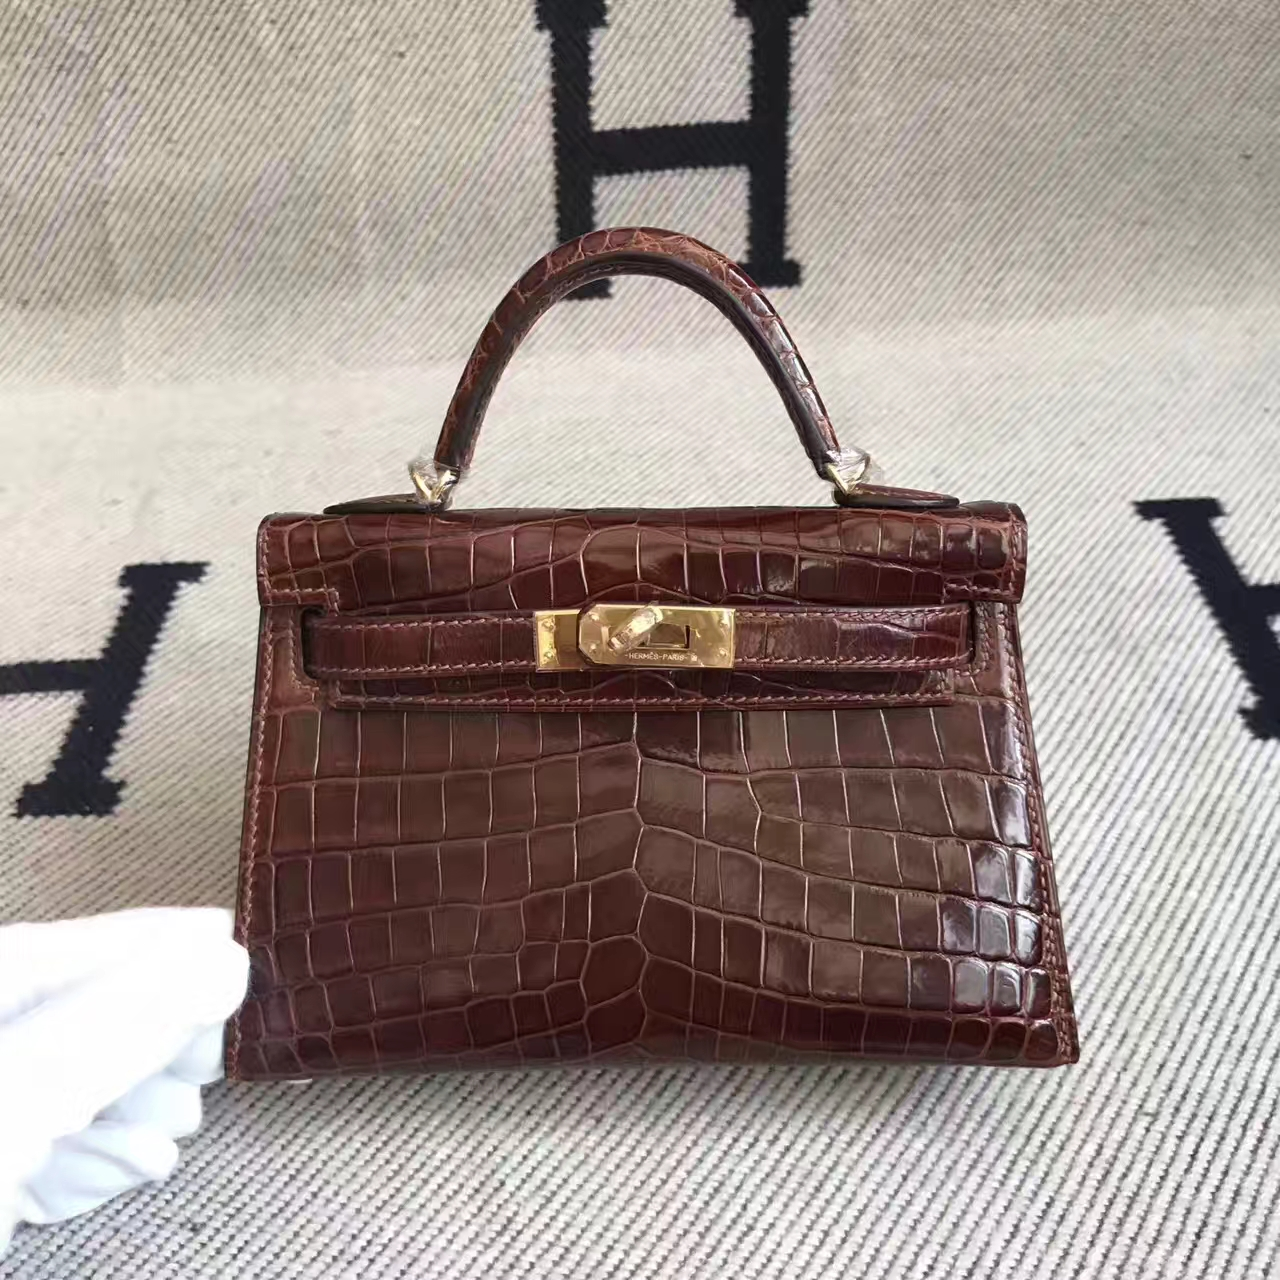 Wholesale Hermes Crocodile Shiny Minikelly-2 Bag in CK31 Miel